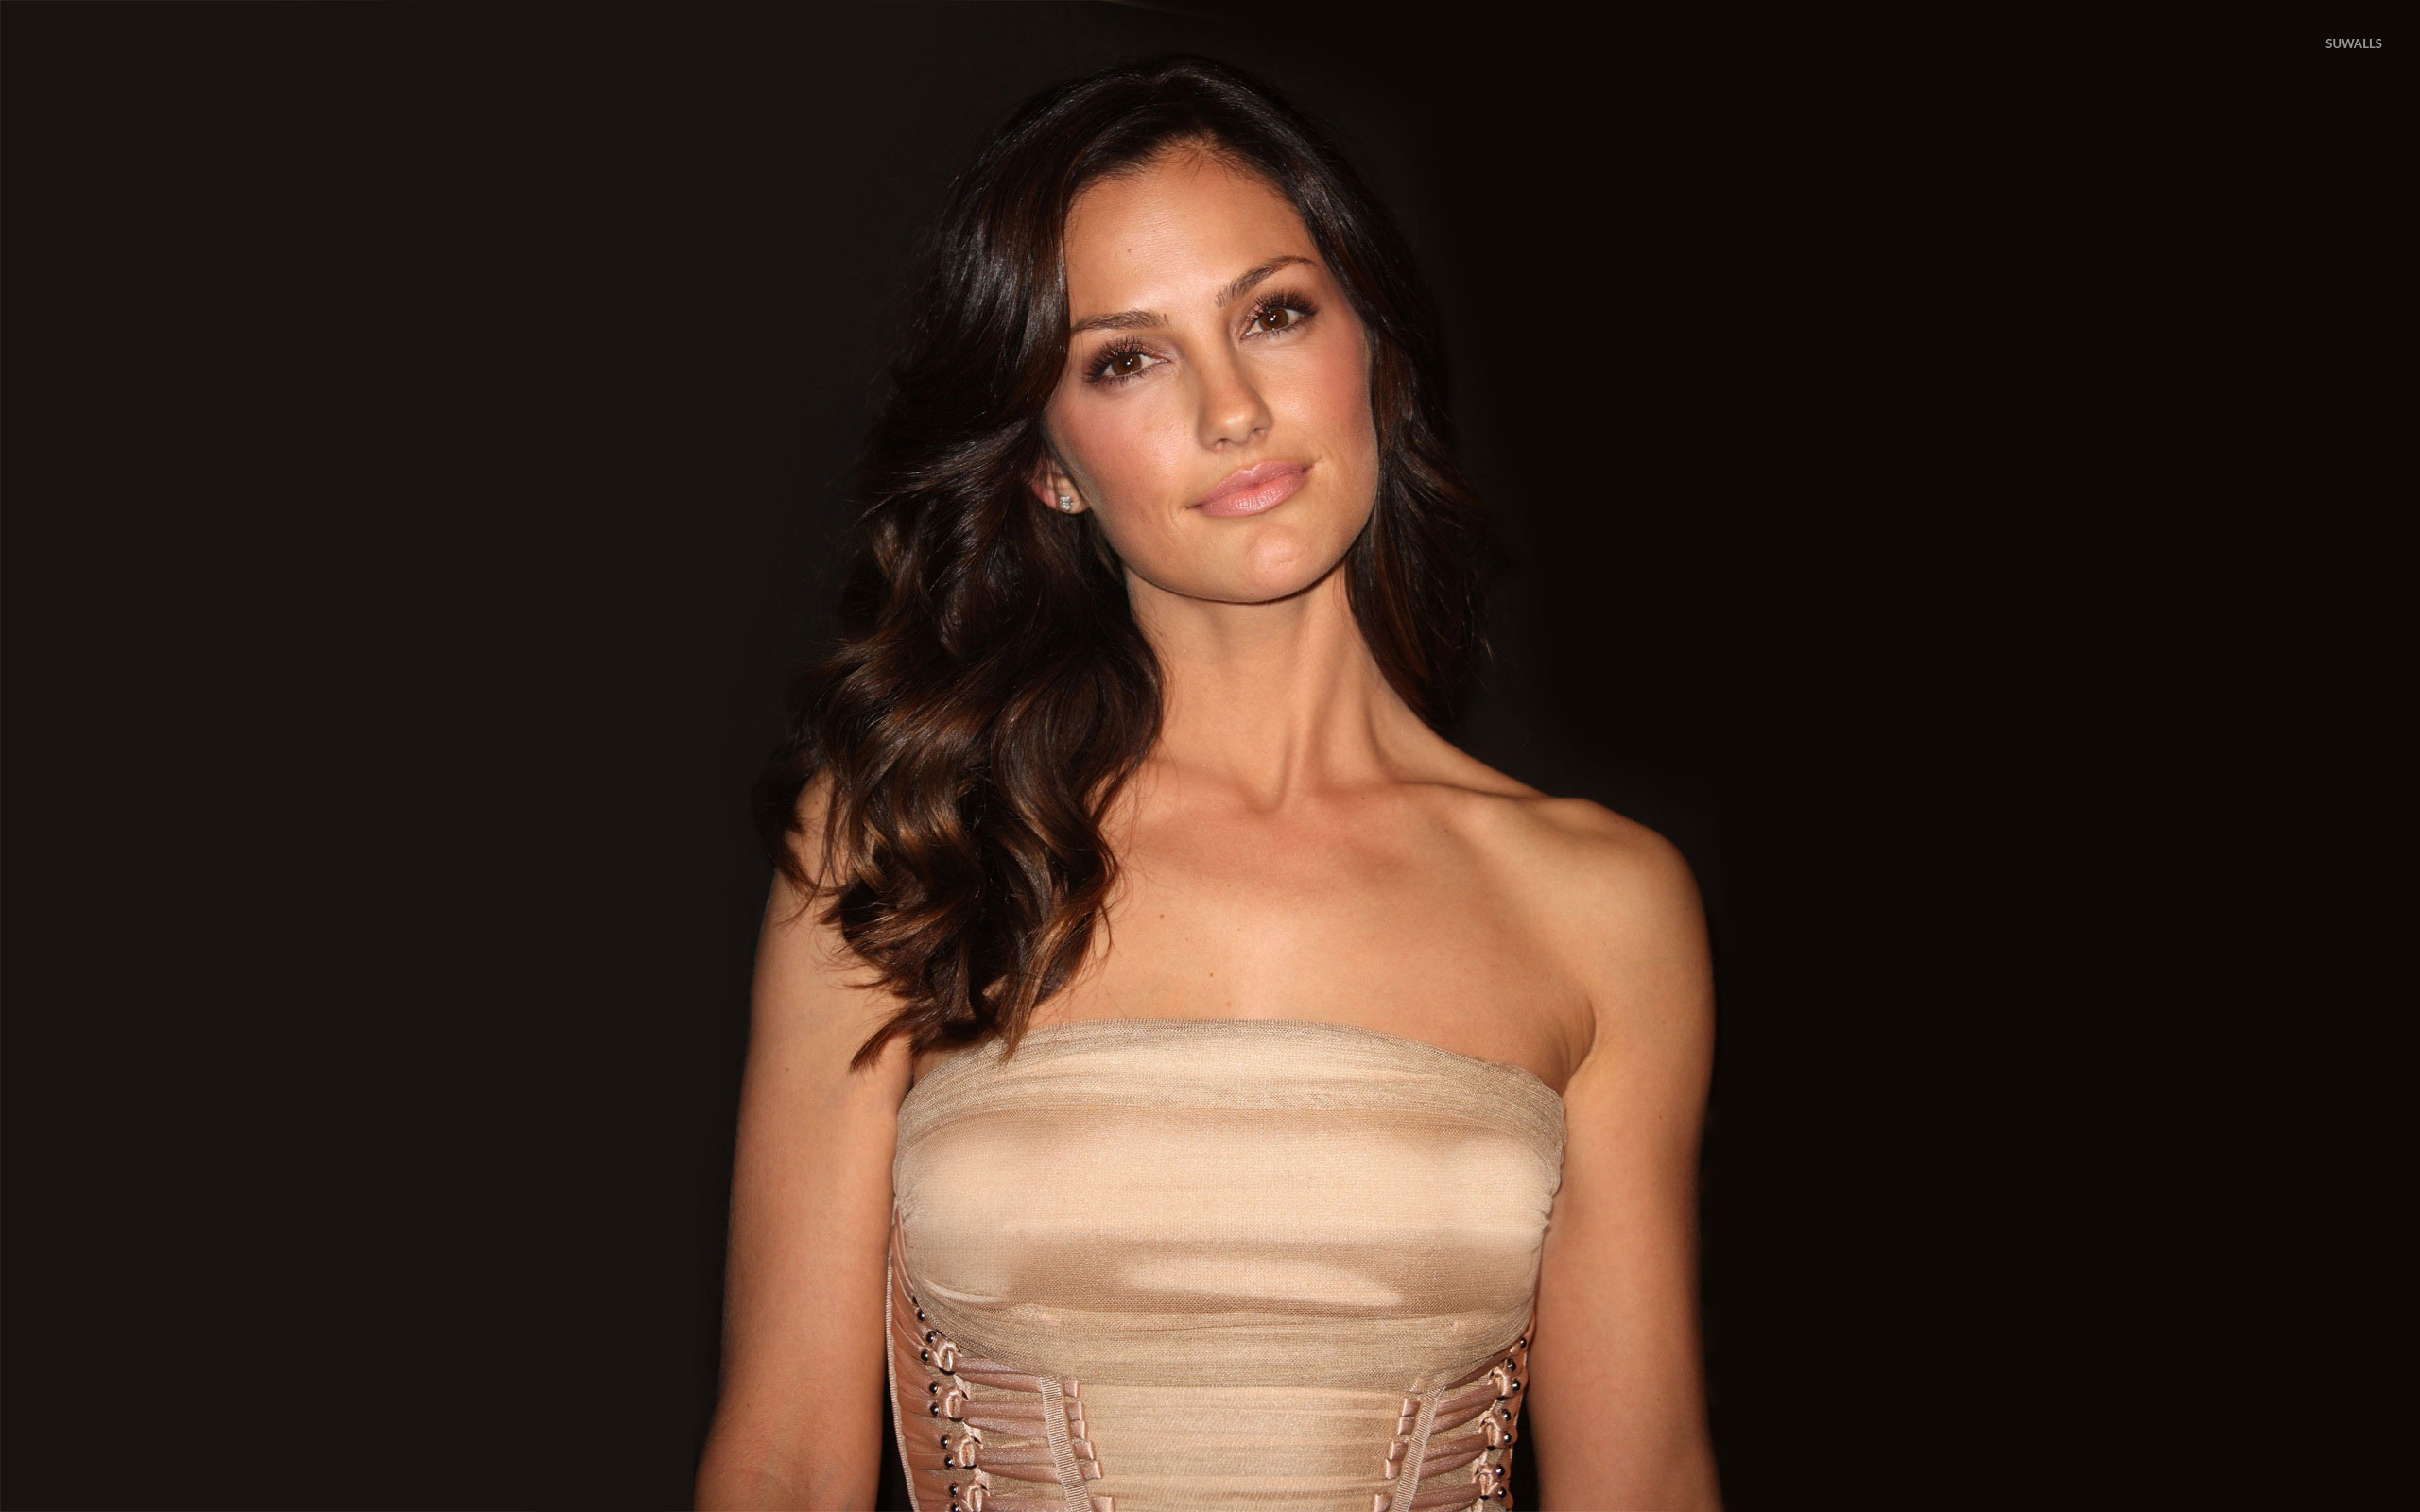 Minka Kelly 14 Wallpaper Celebrity Wallpapers 6780